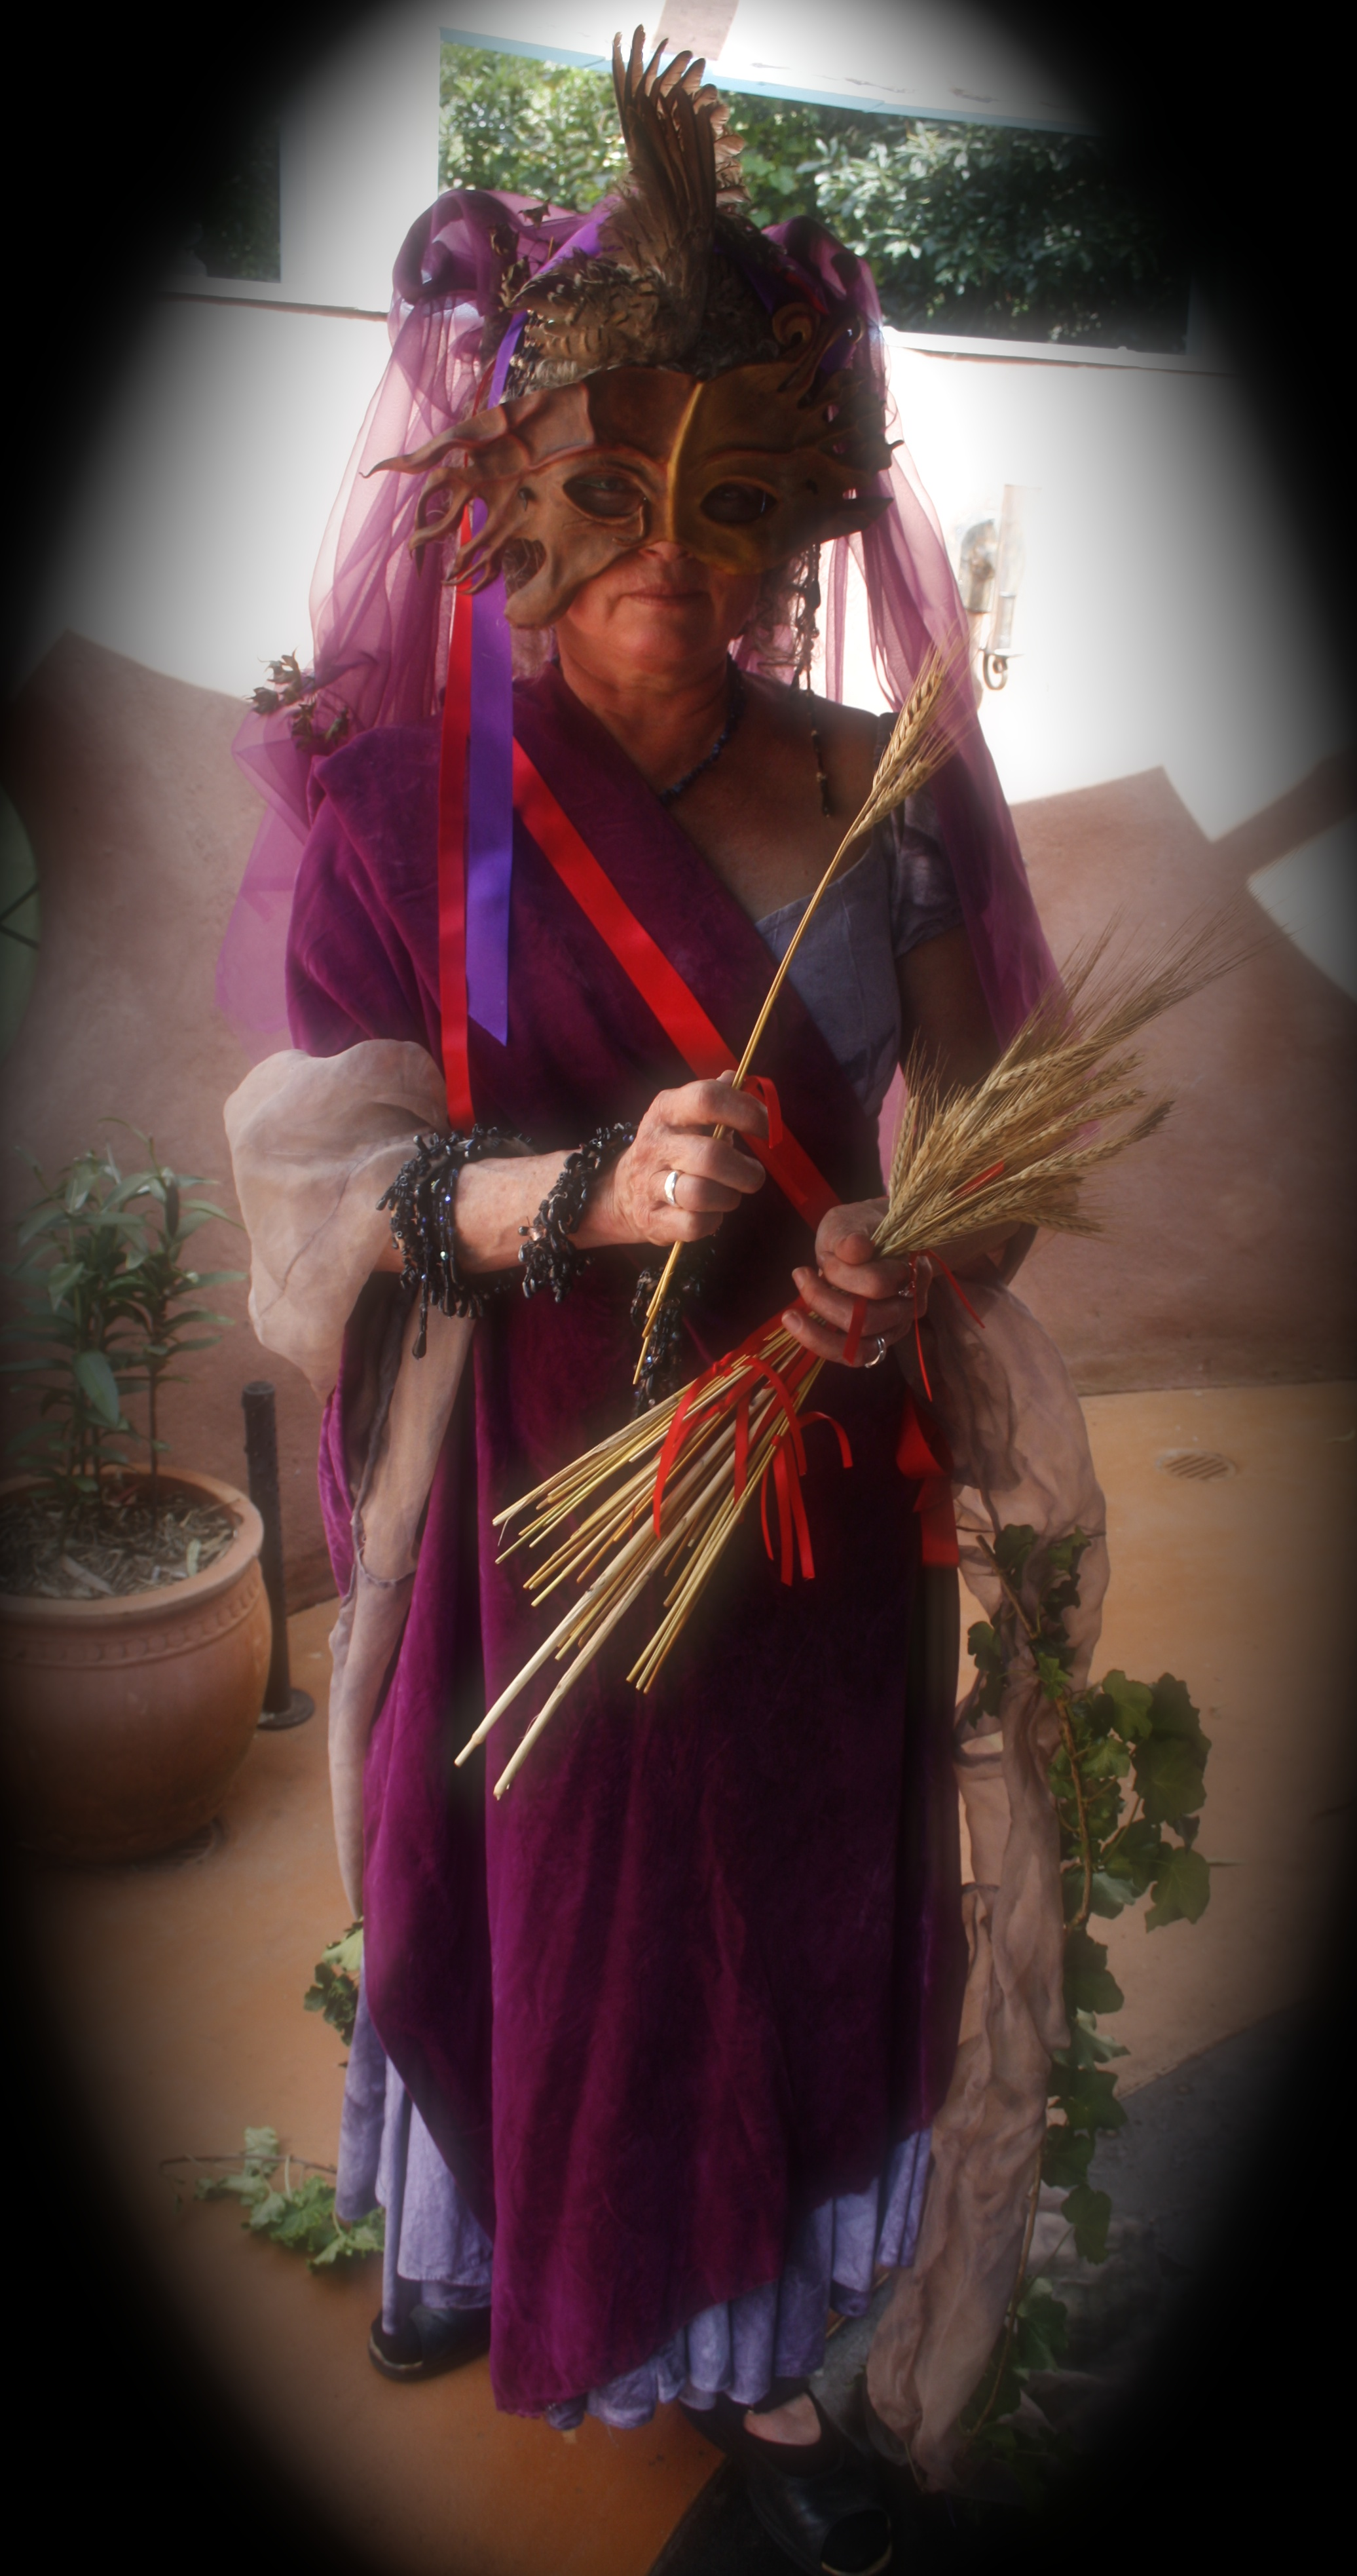 Demeter offers the wheat - the harvest of every moment. photo: Taffy Seaborne, MoonCourt, Australia, Autumn Equinox 2012